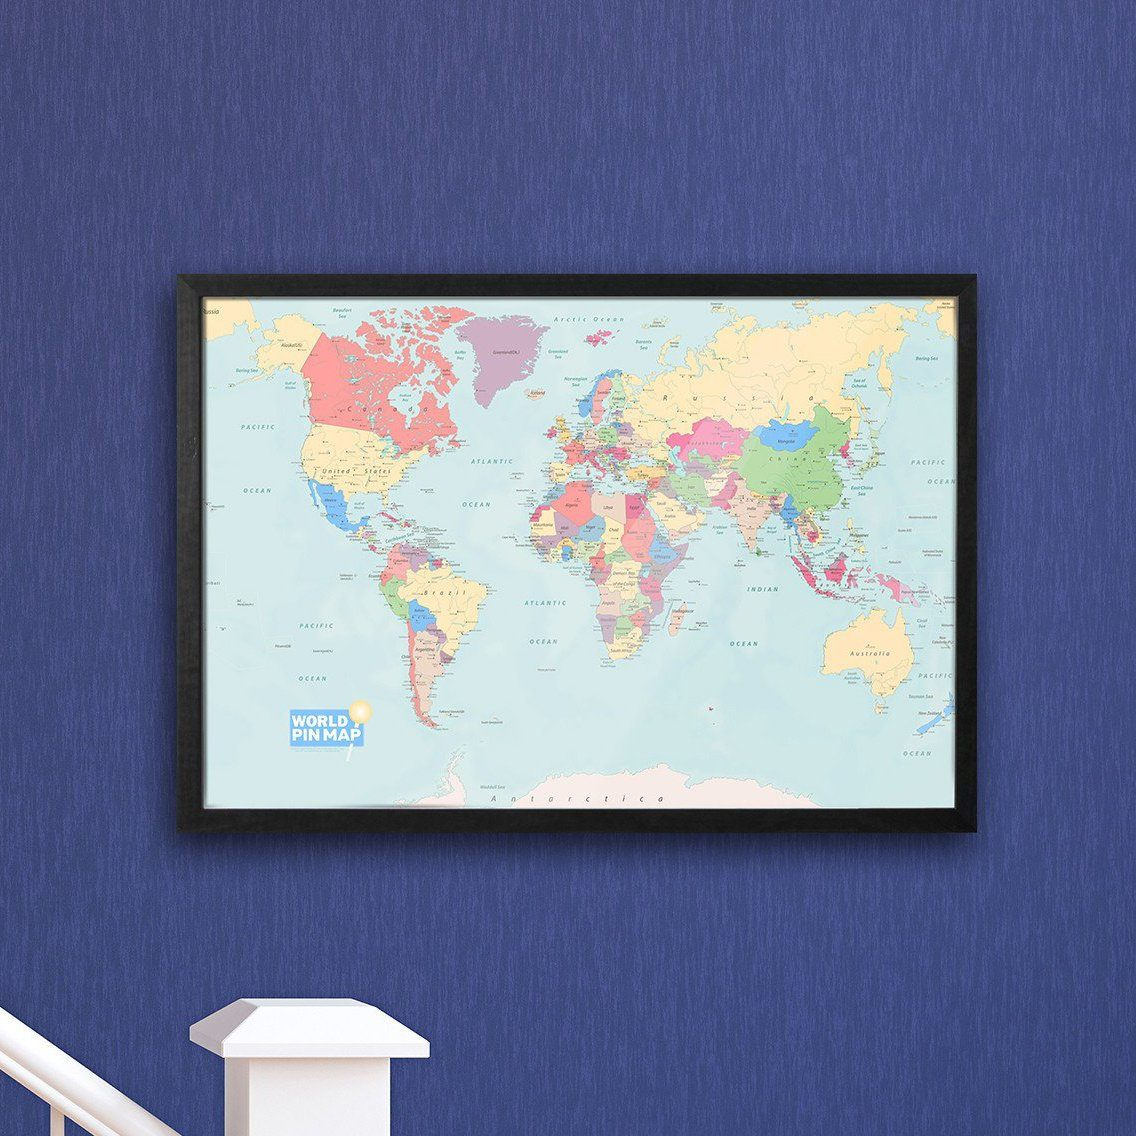 World Map Pinboard | Framed Map Pinboard on